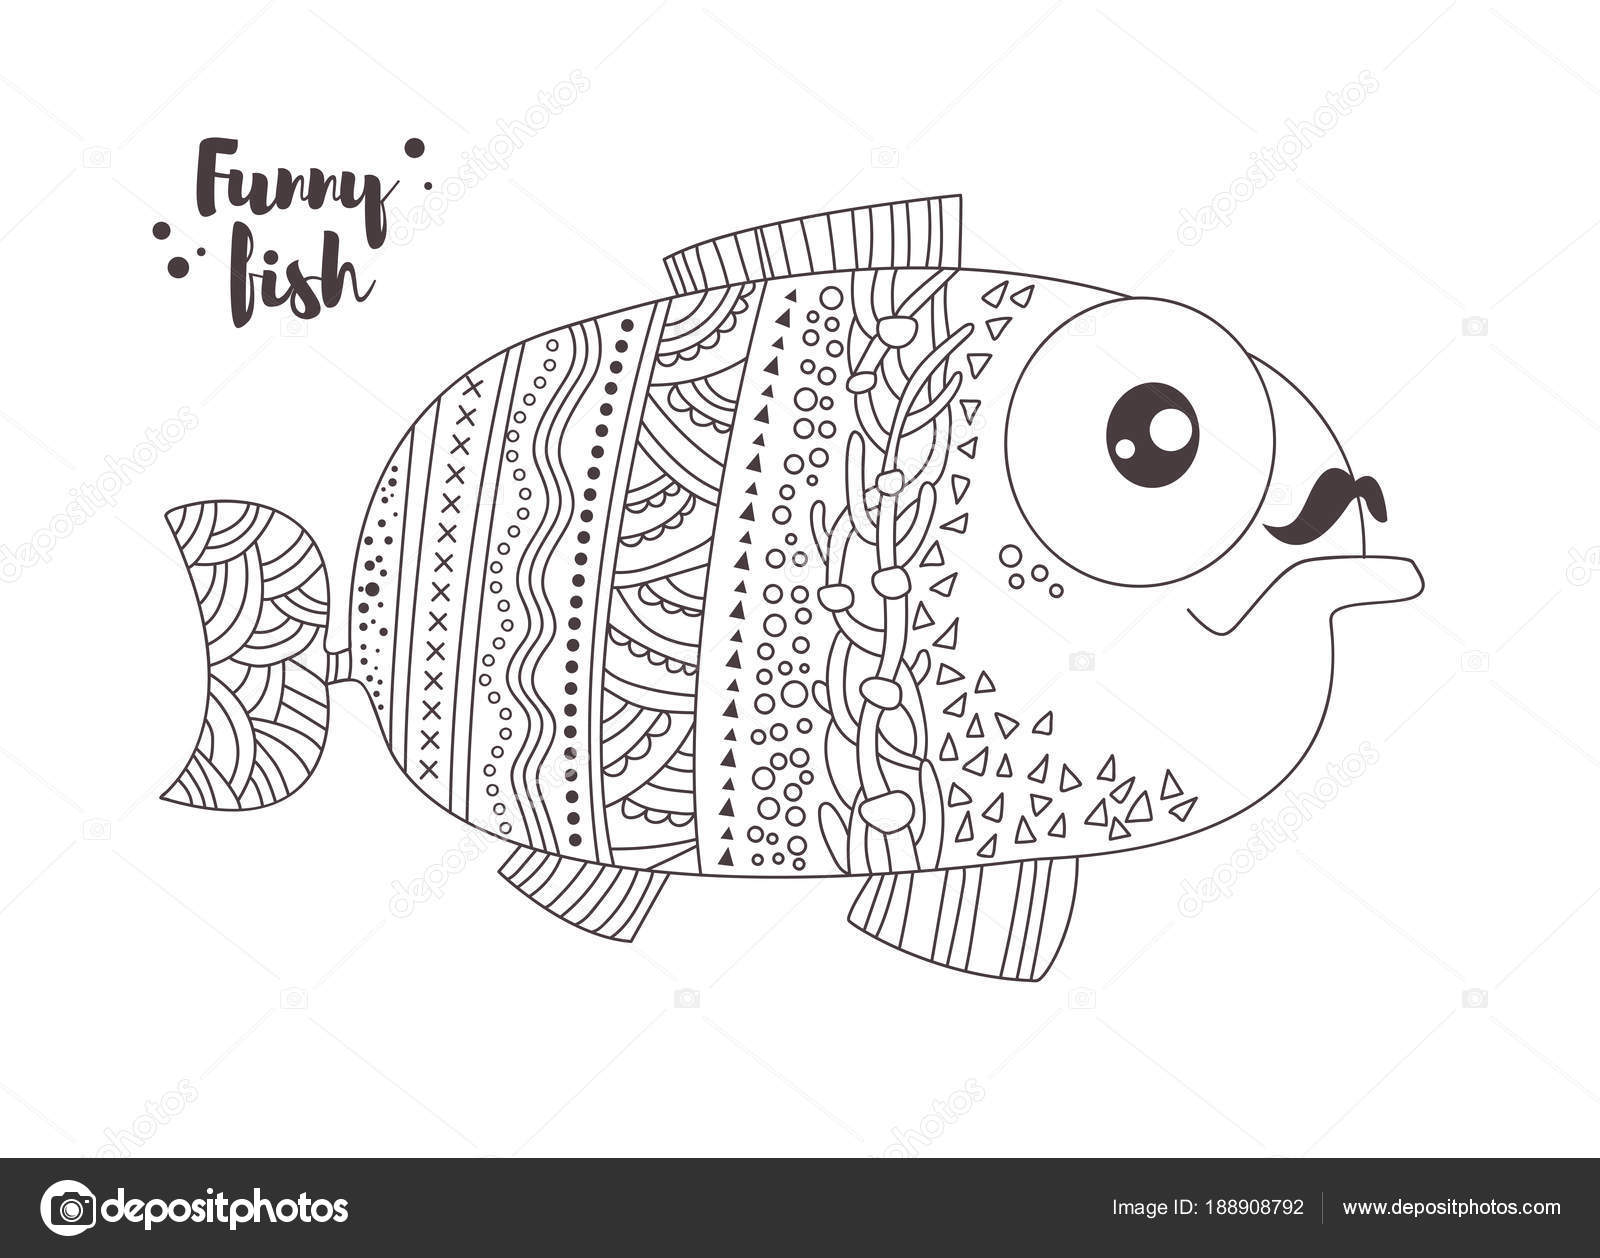 Funny fish. Coloring book — Stock Vector © AnnaViolet #188908792